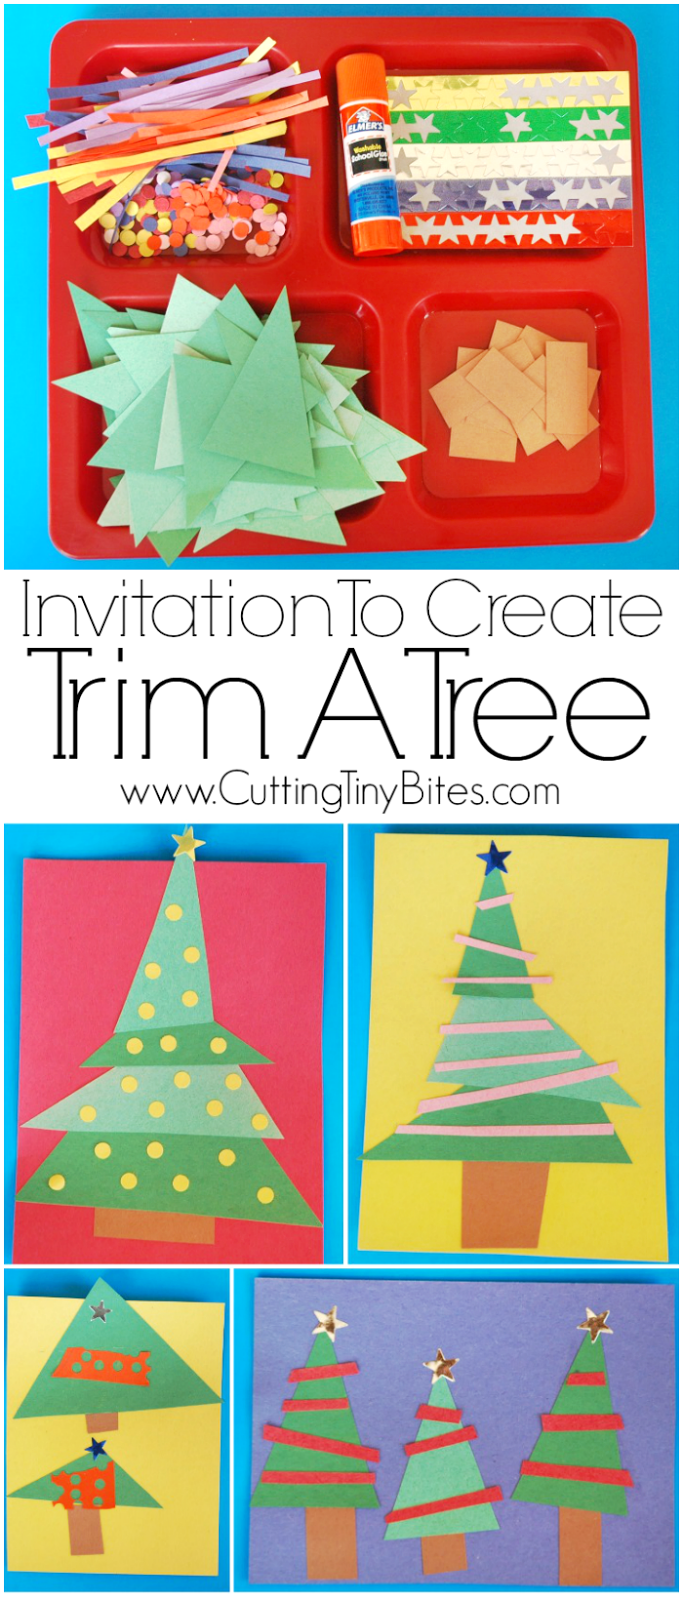 Quick Easy Christmas Craft Ideas Part - 38: Pinterest